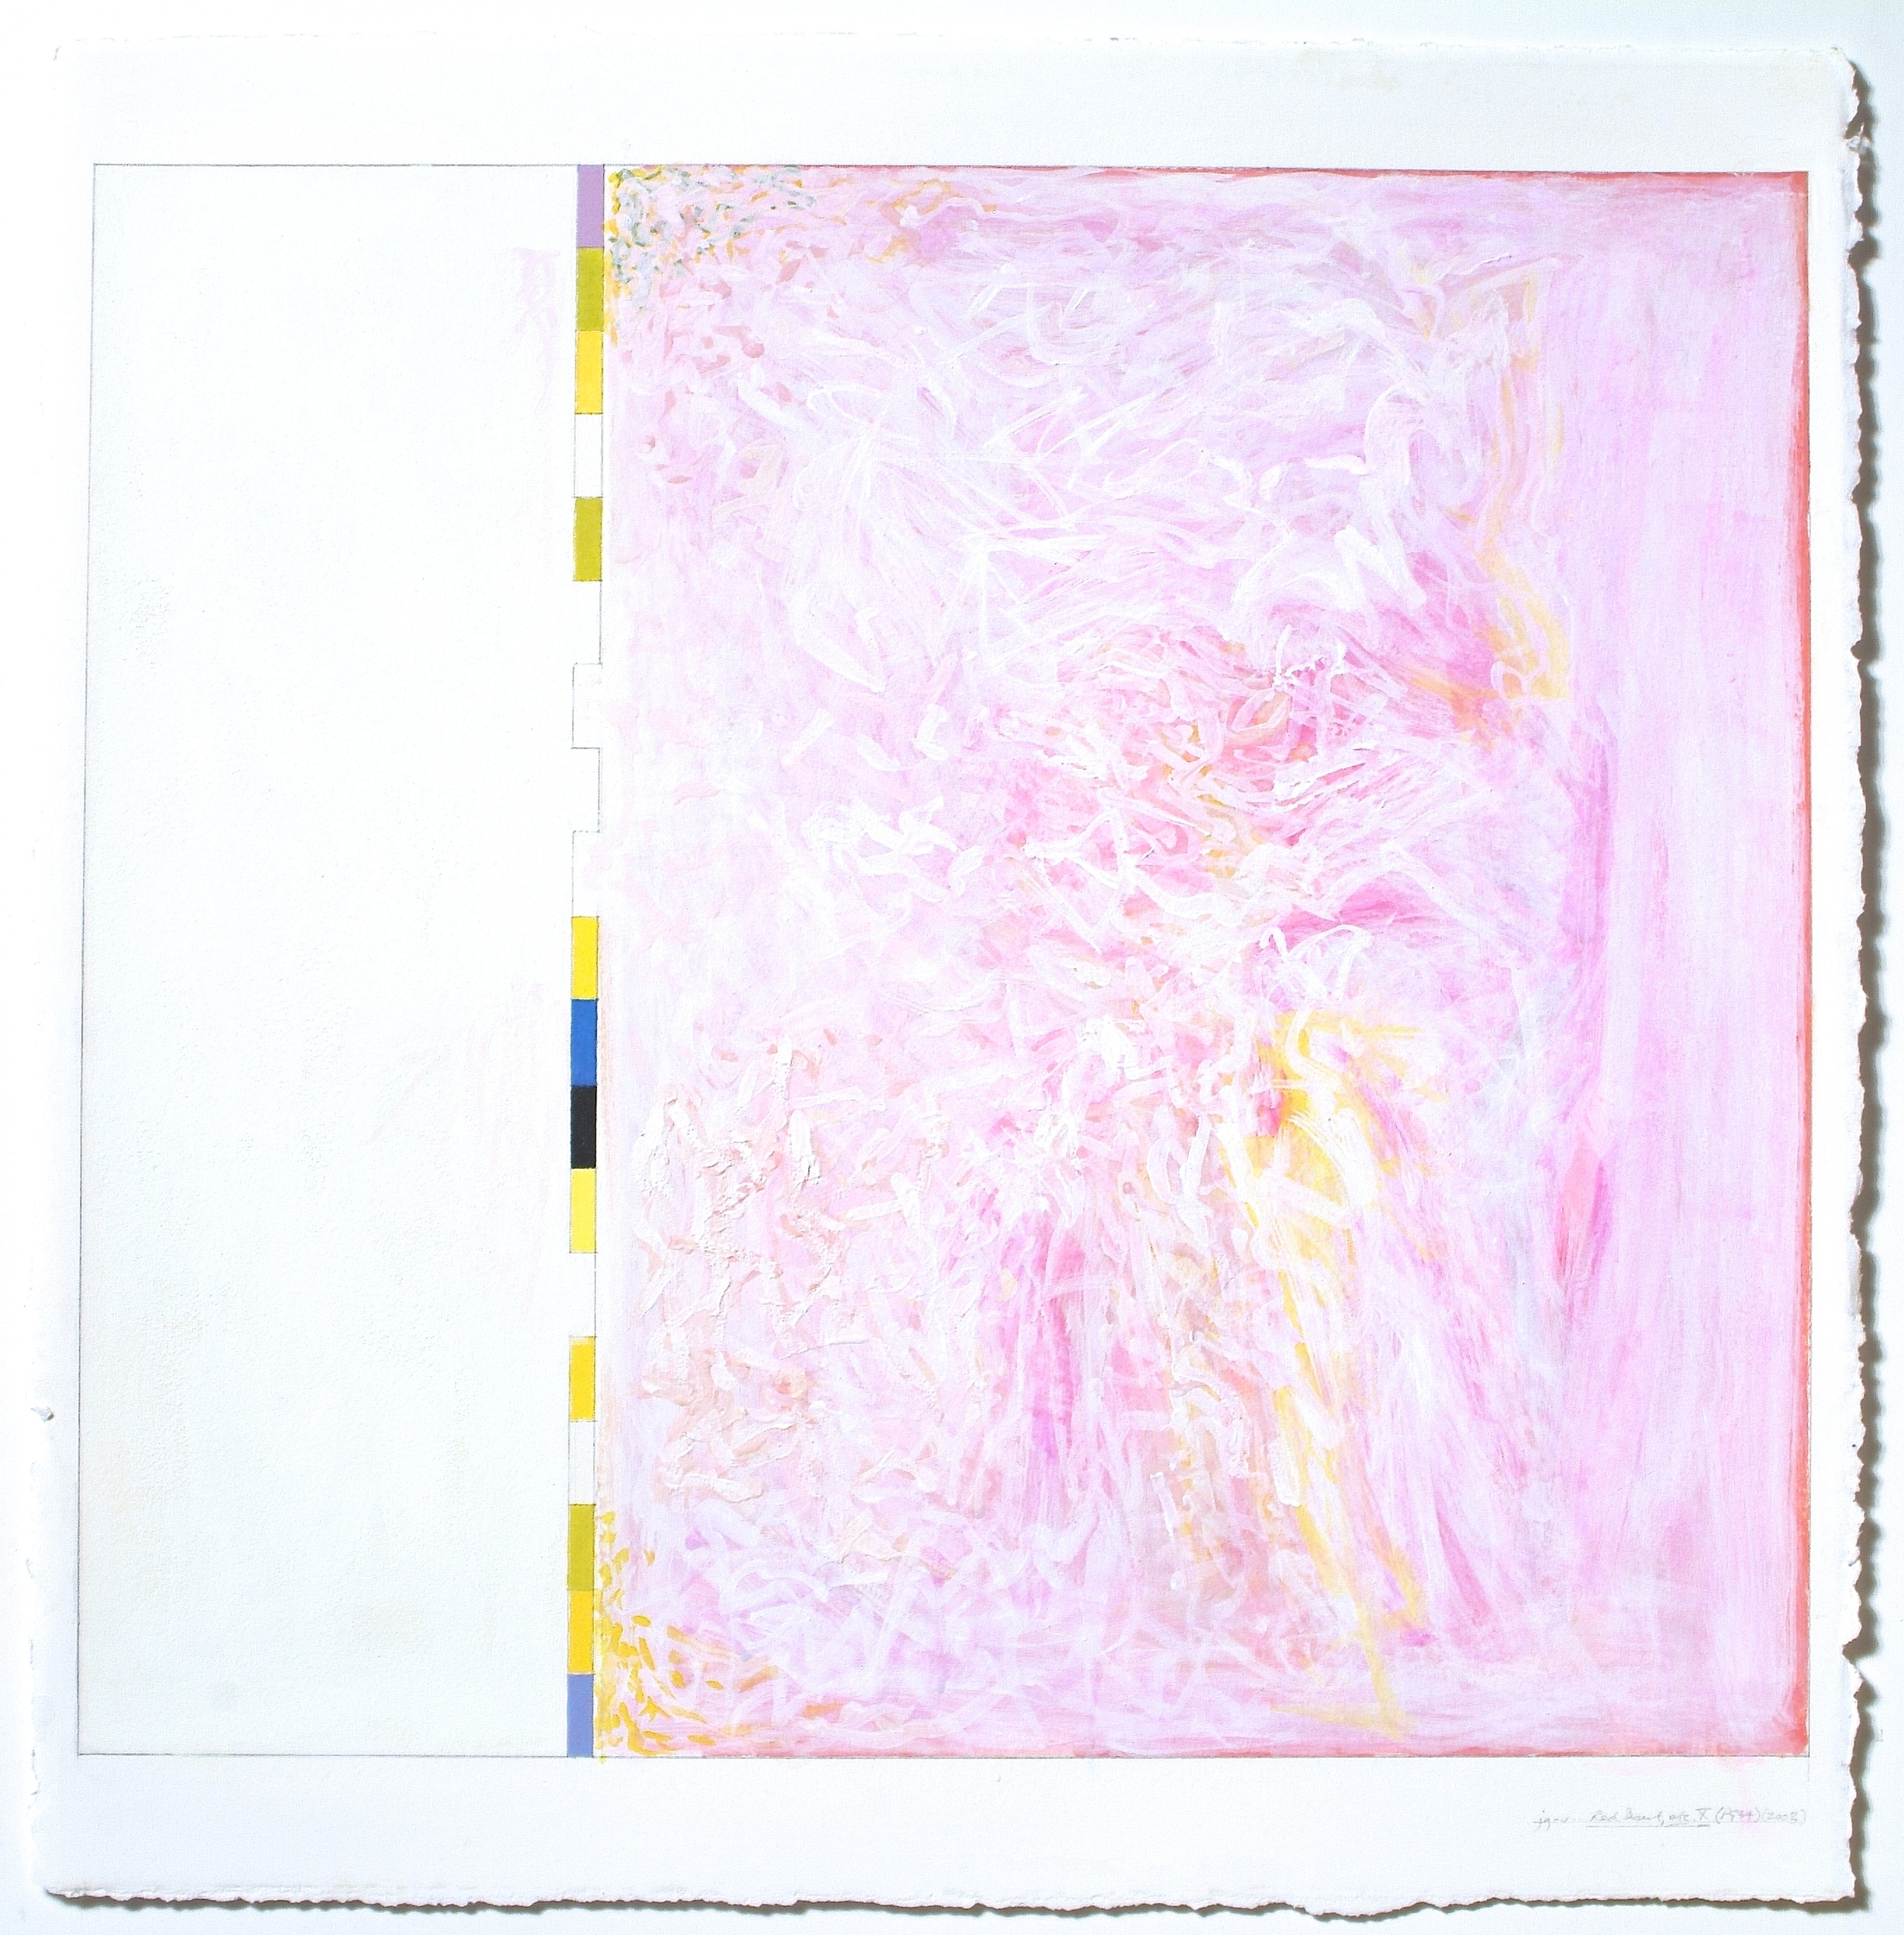 """Untitled... Red Desert, etc.X (PG34), 2003, gouache on paper, 20 3/16""""x21 15/16""""(image), 30 1/8""""x22""""(paper)"""